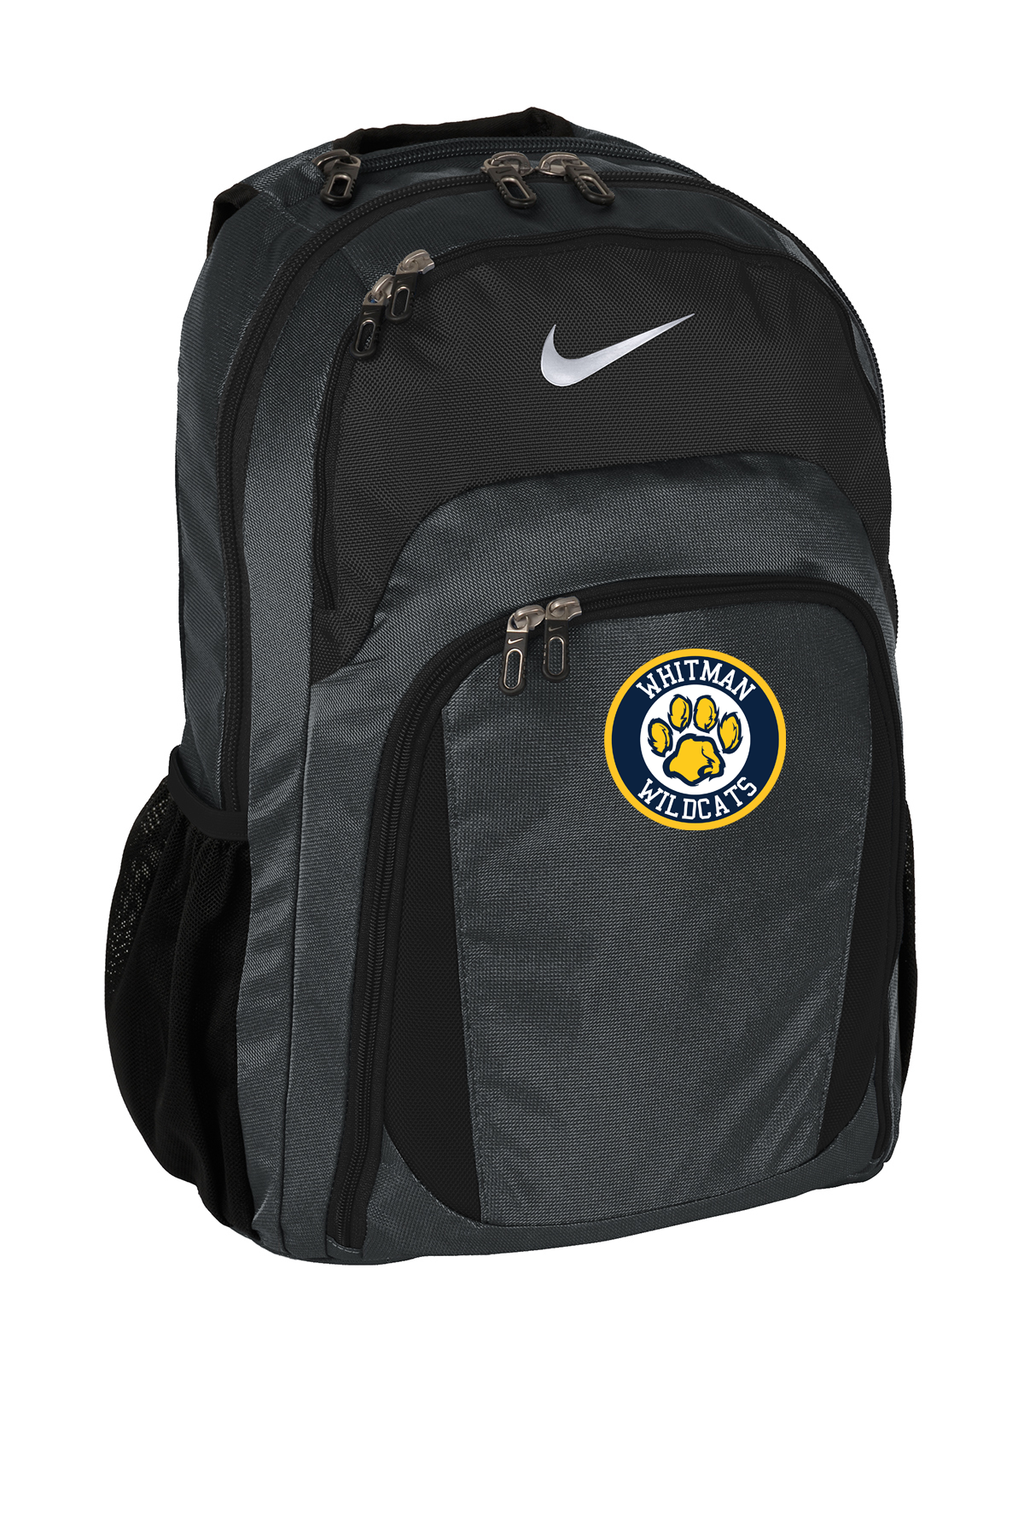 Whitman Wildcats Nike Backpack